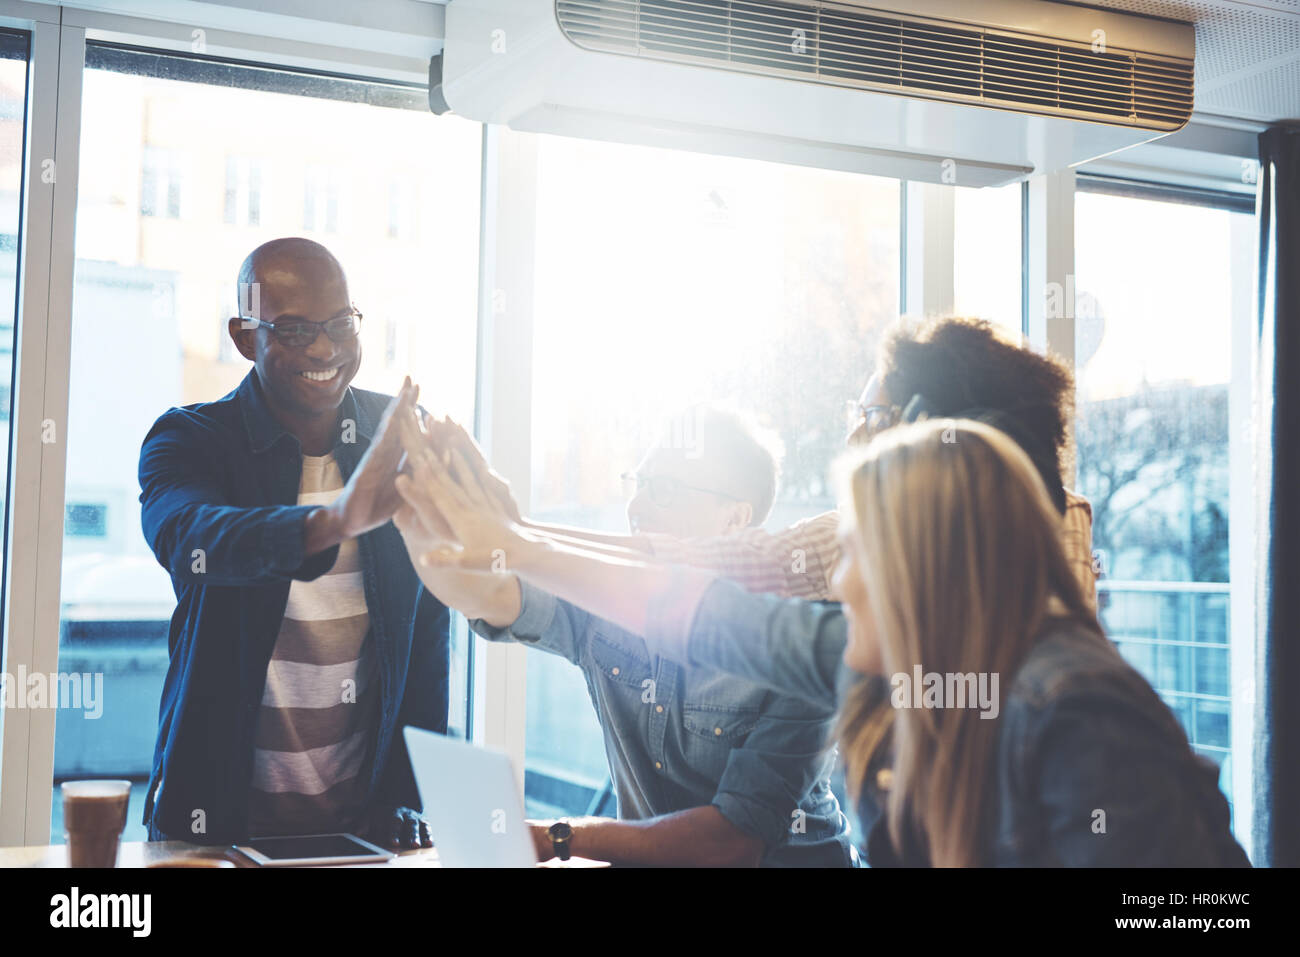 Young people in casual clothes giving high fives to each other as if celebrating something, against bright window - Stock Image